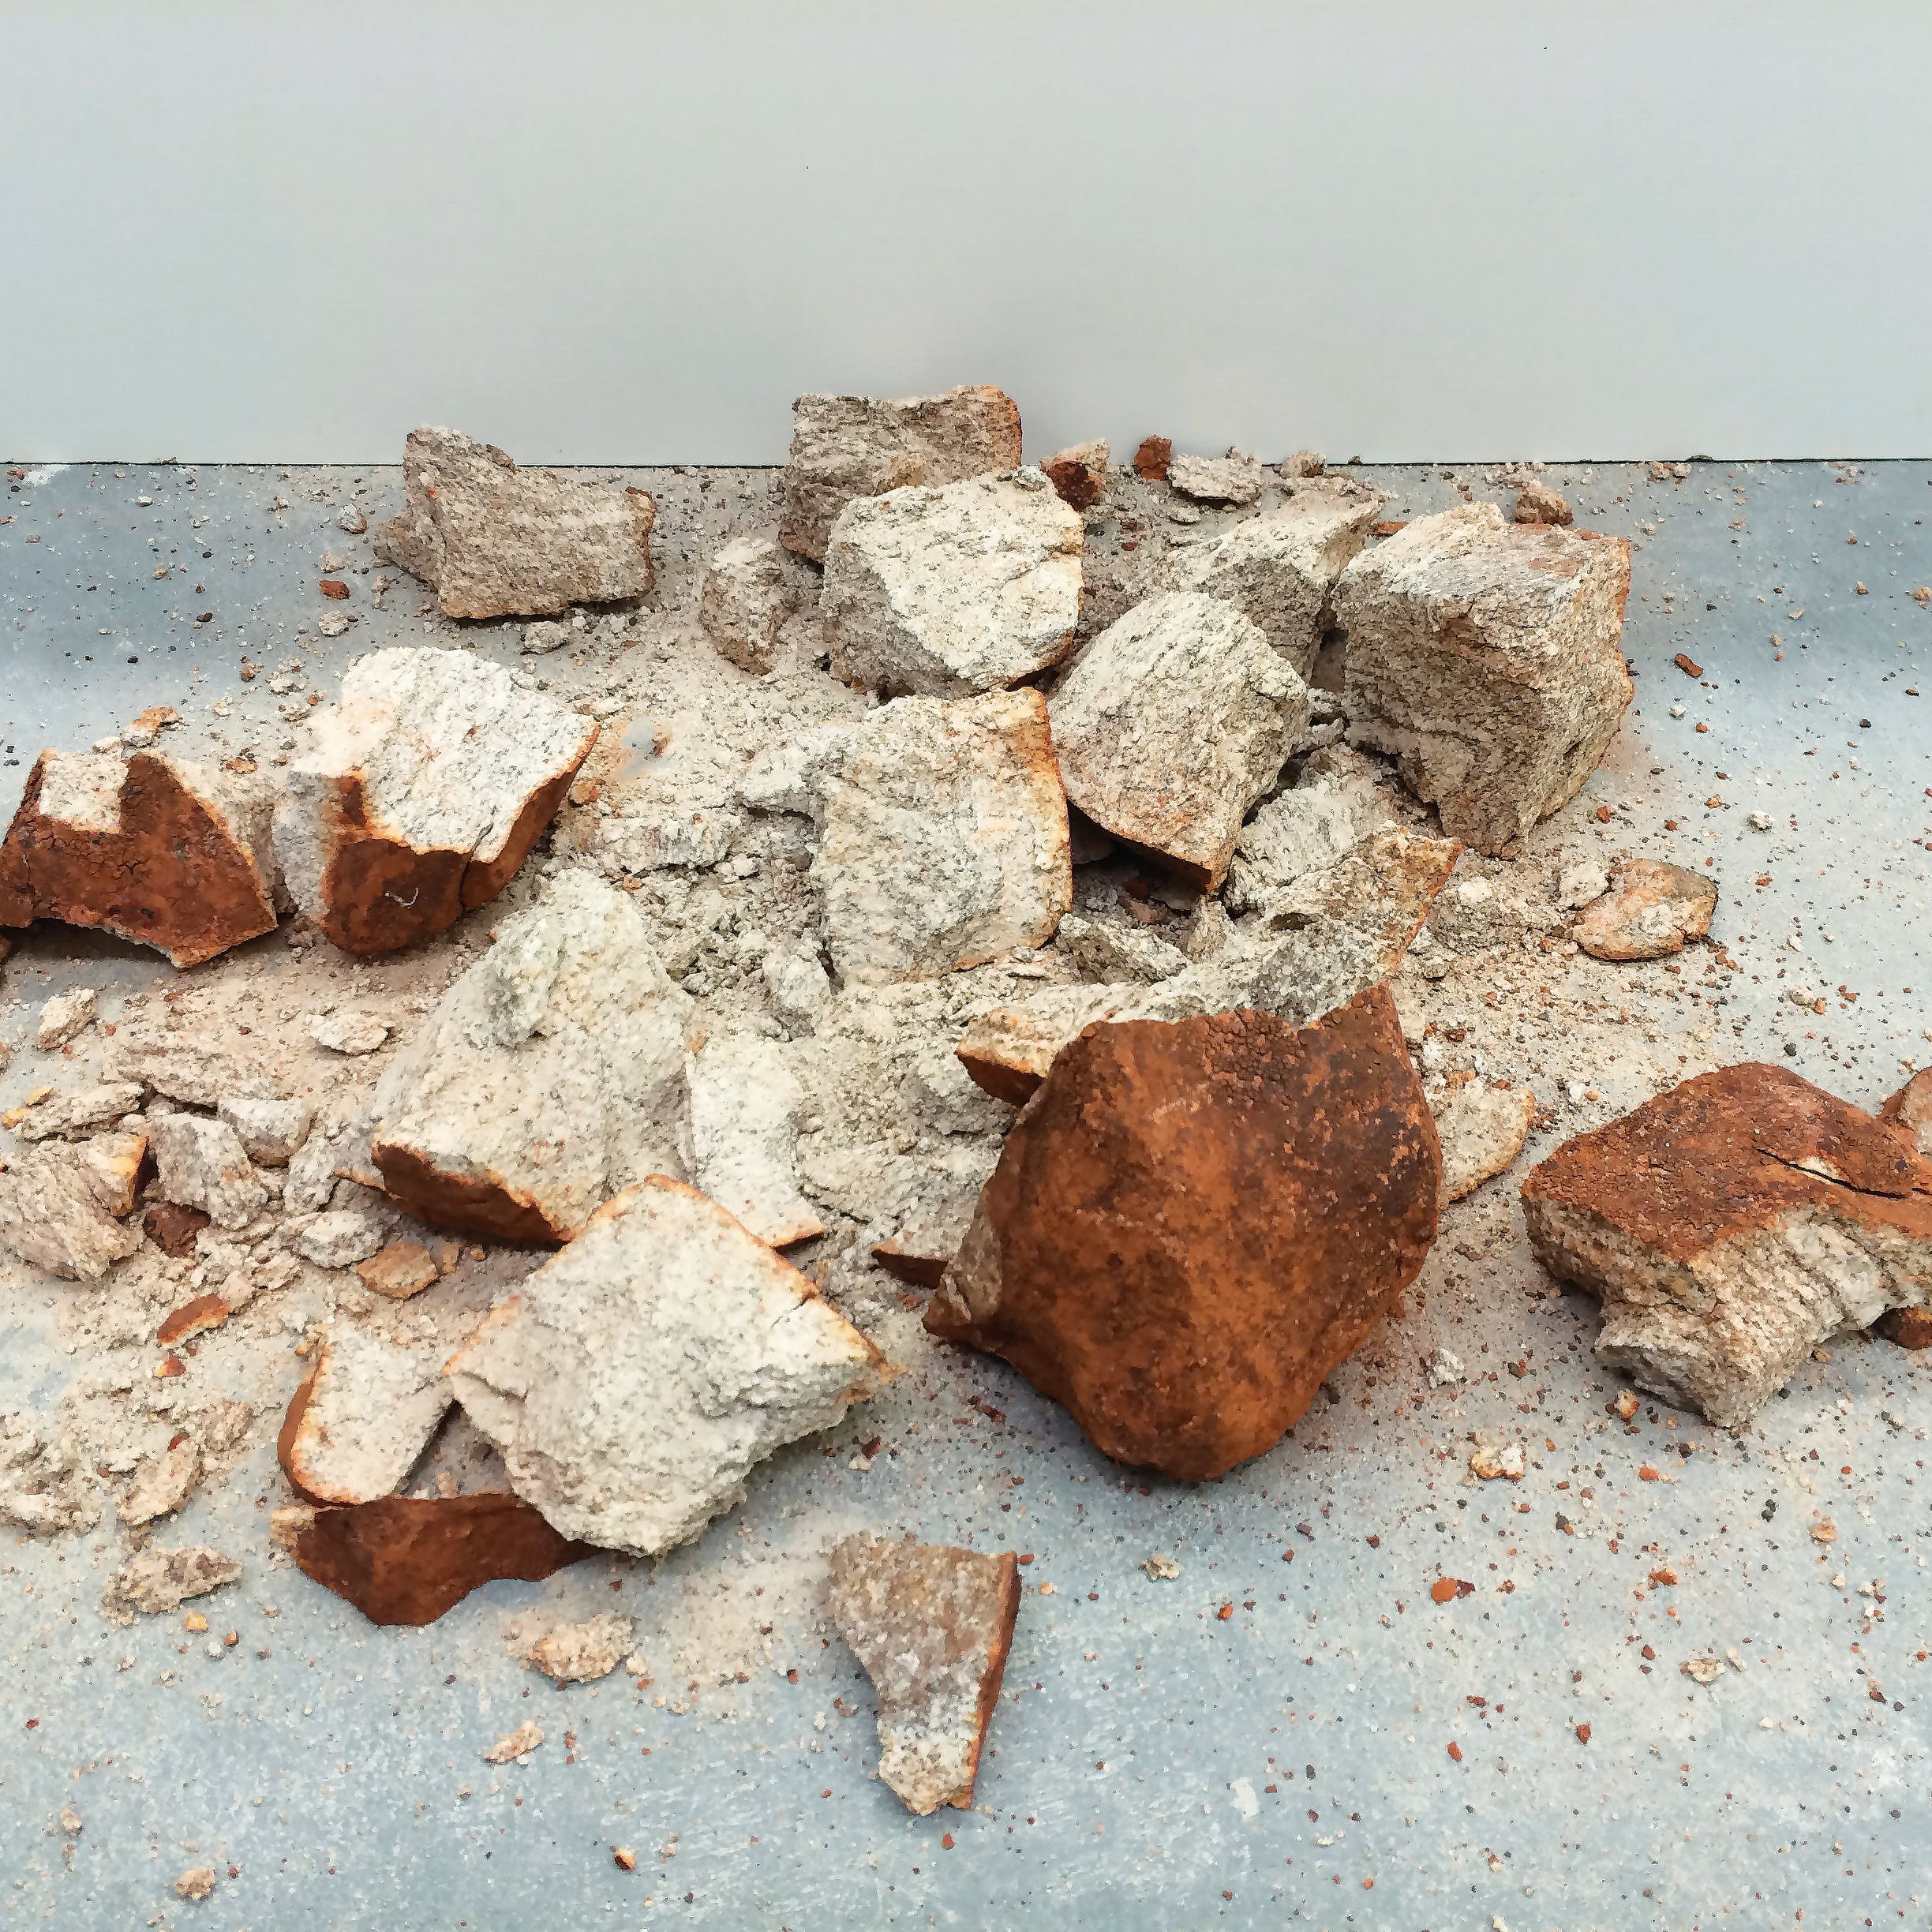 a large stone smashed into crumbly sandy pieces